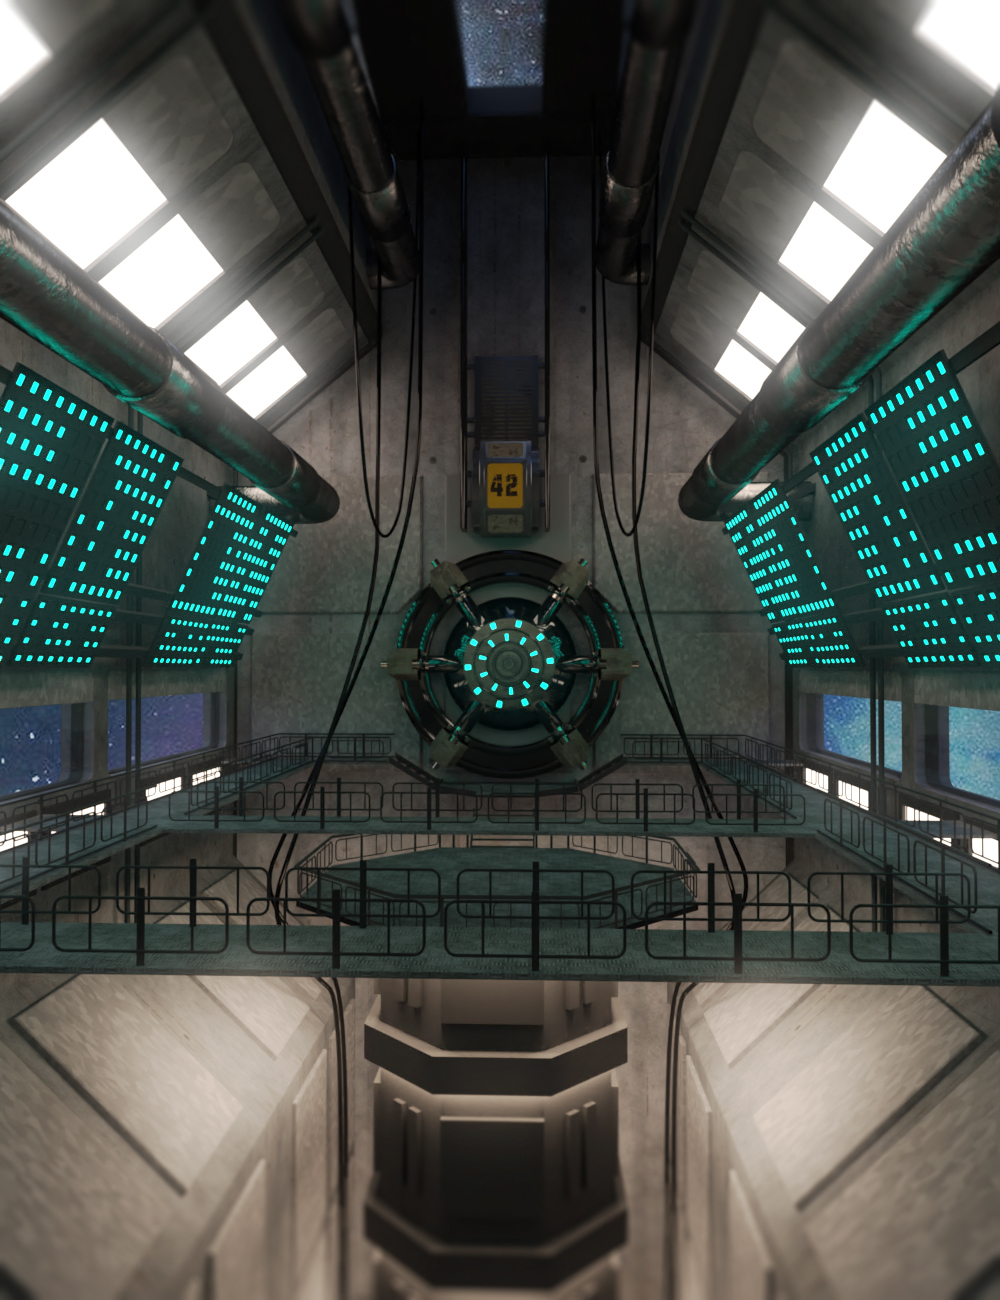 Astral Gate by: PerspectX, 3D Models by Daz 3D